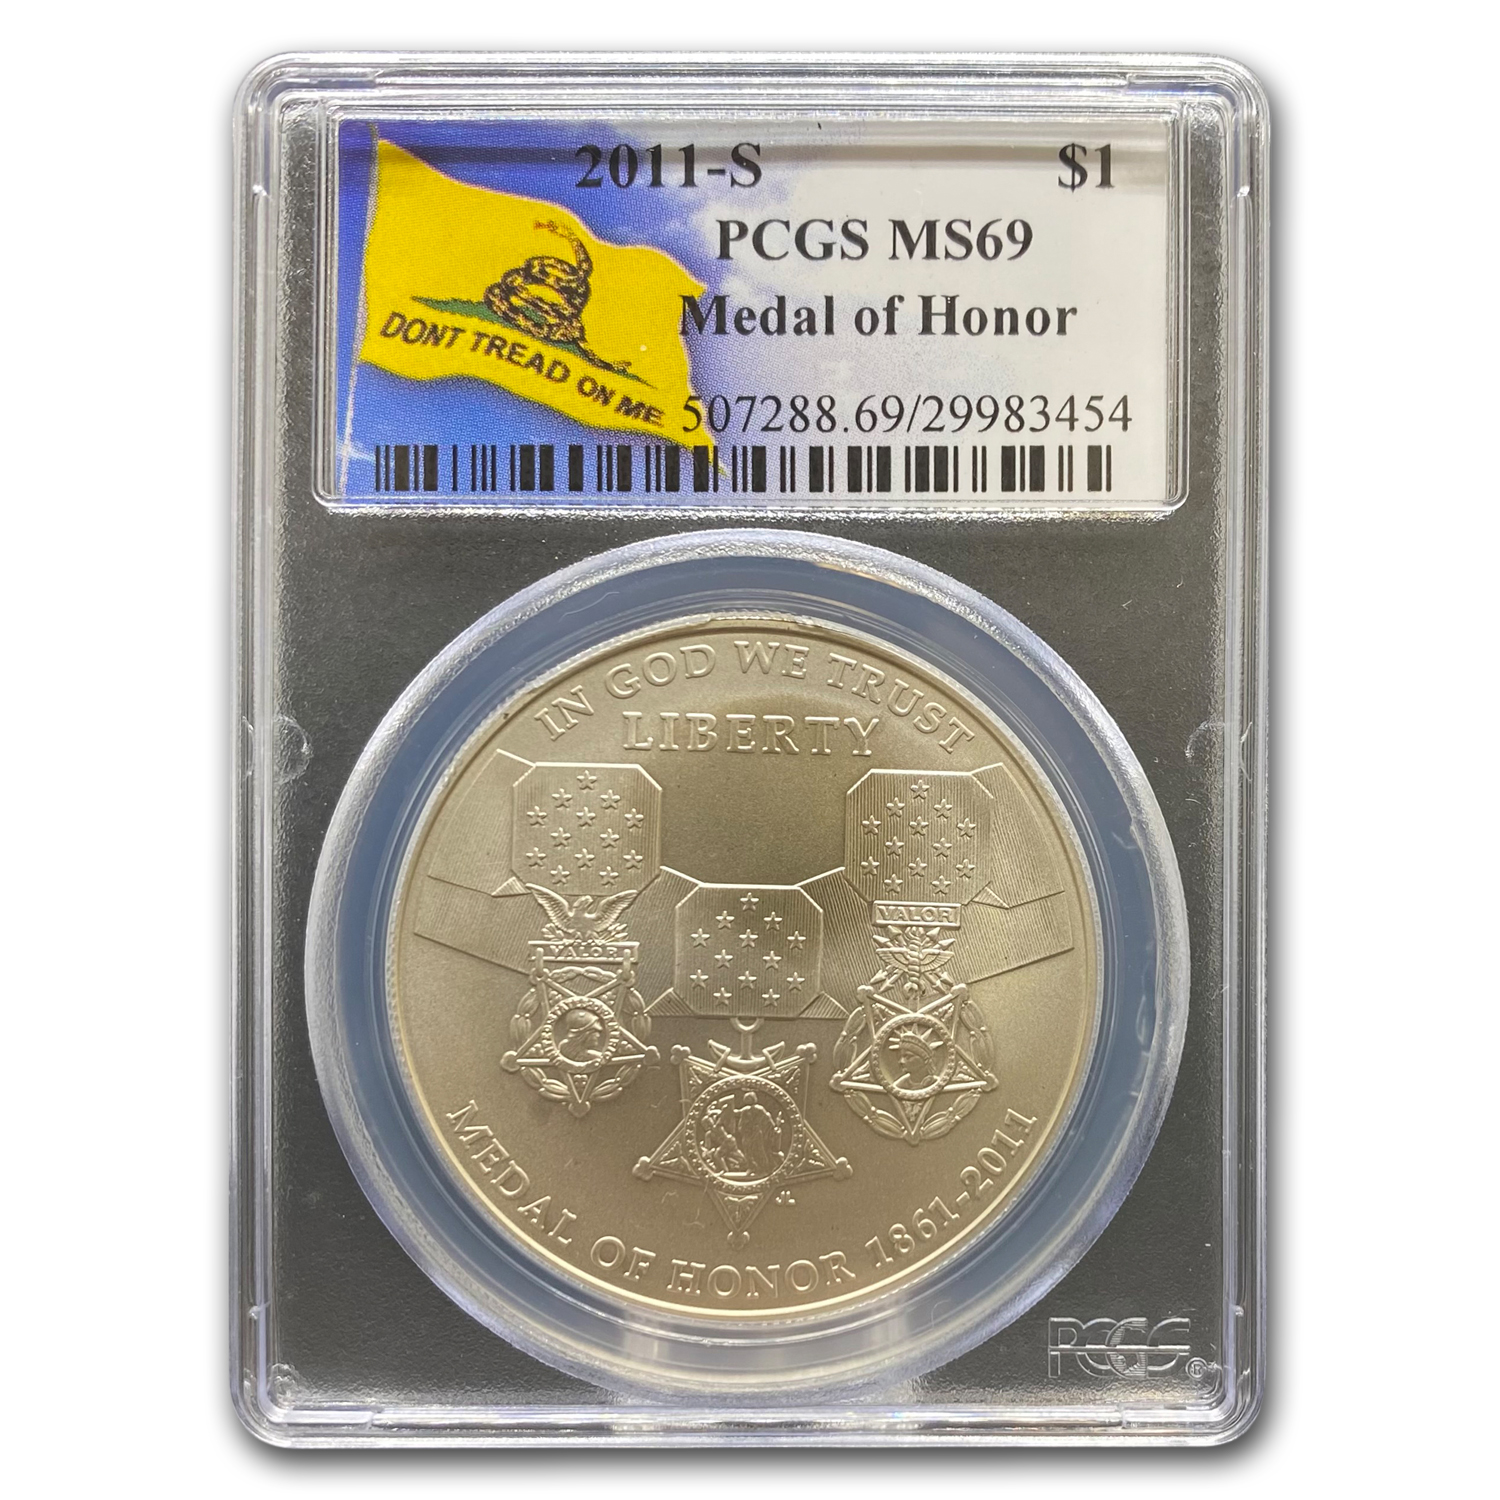 2011-S Medal of Honor $1 Silver Commemorative MS-69 PCGS